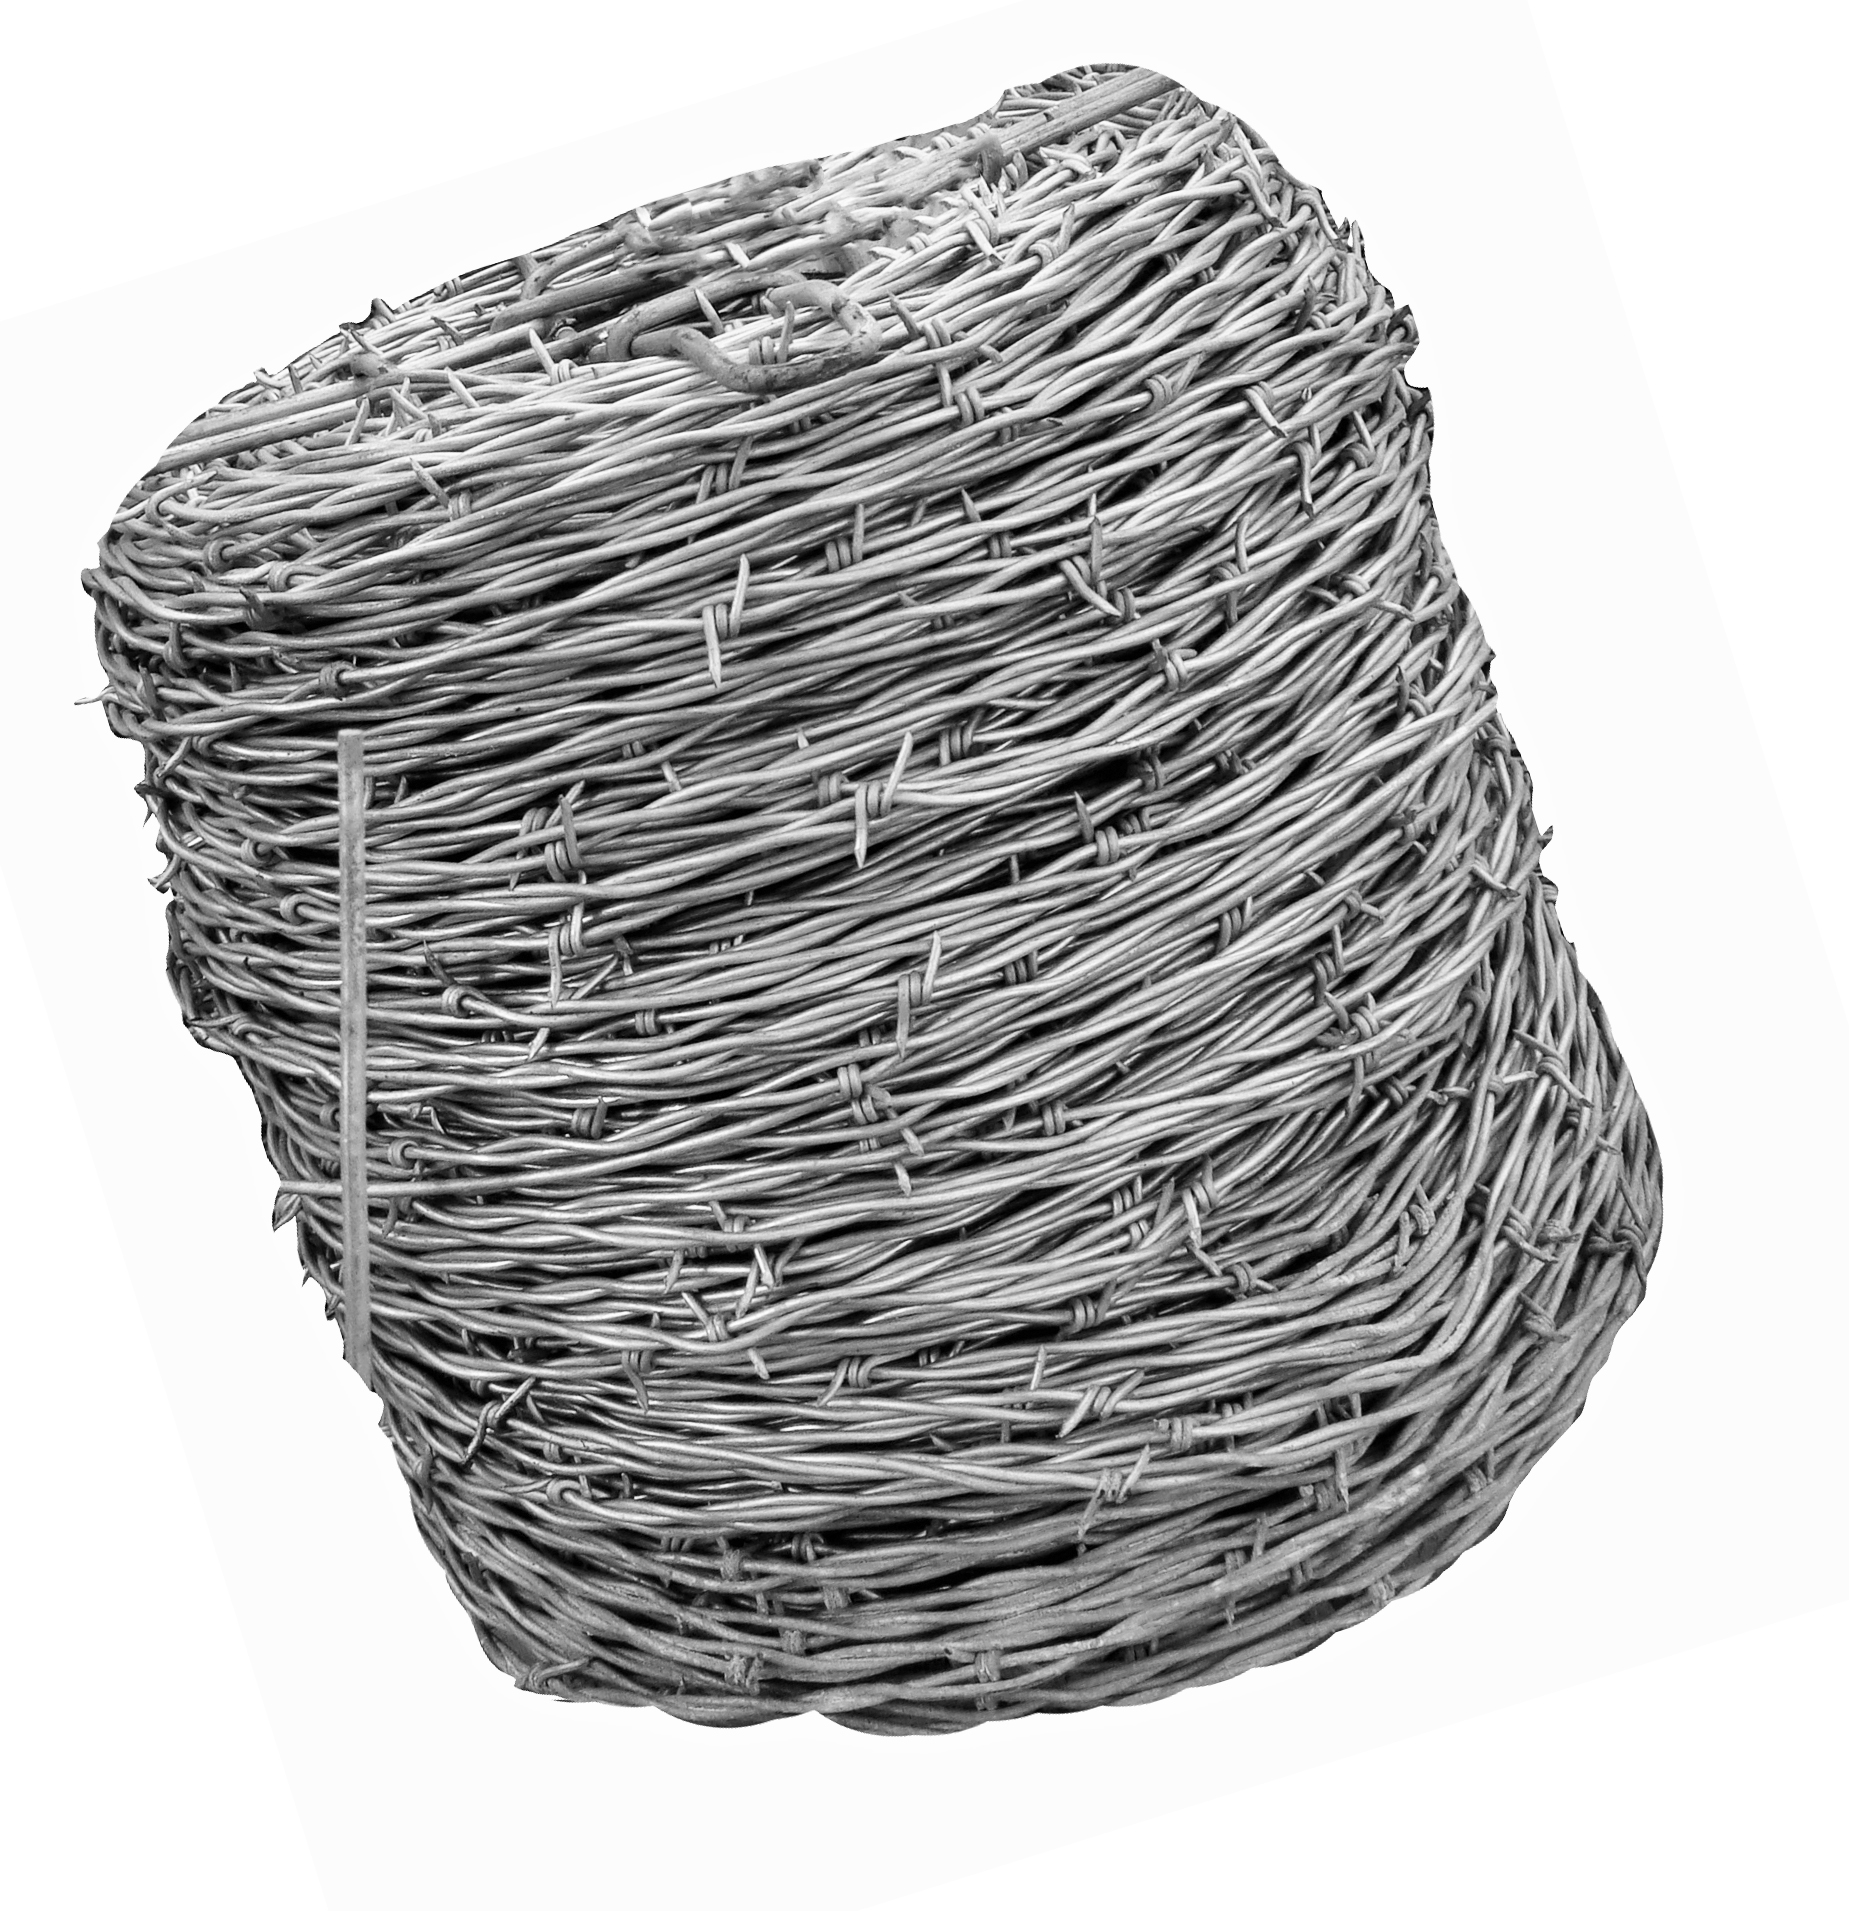 Steel t posts barbed wire all of our barbed wire barbless wire products are first grade top quality and made in the usa the premium and stockyards standard barbed wire has a greentooth Gallery